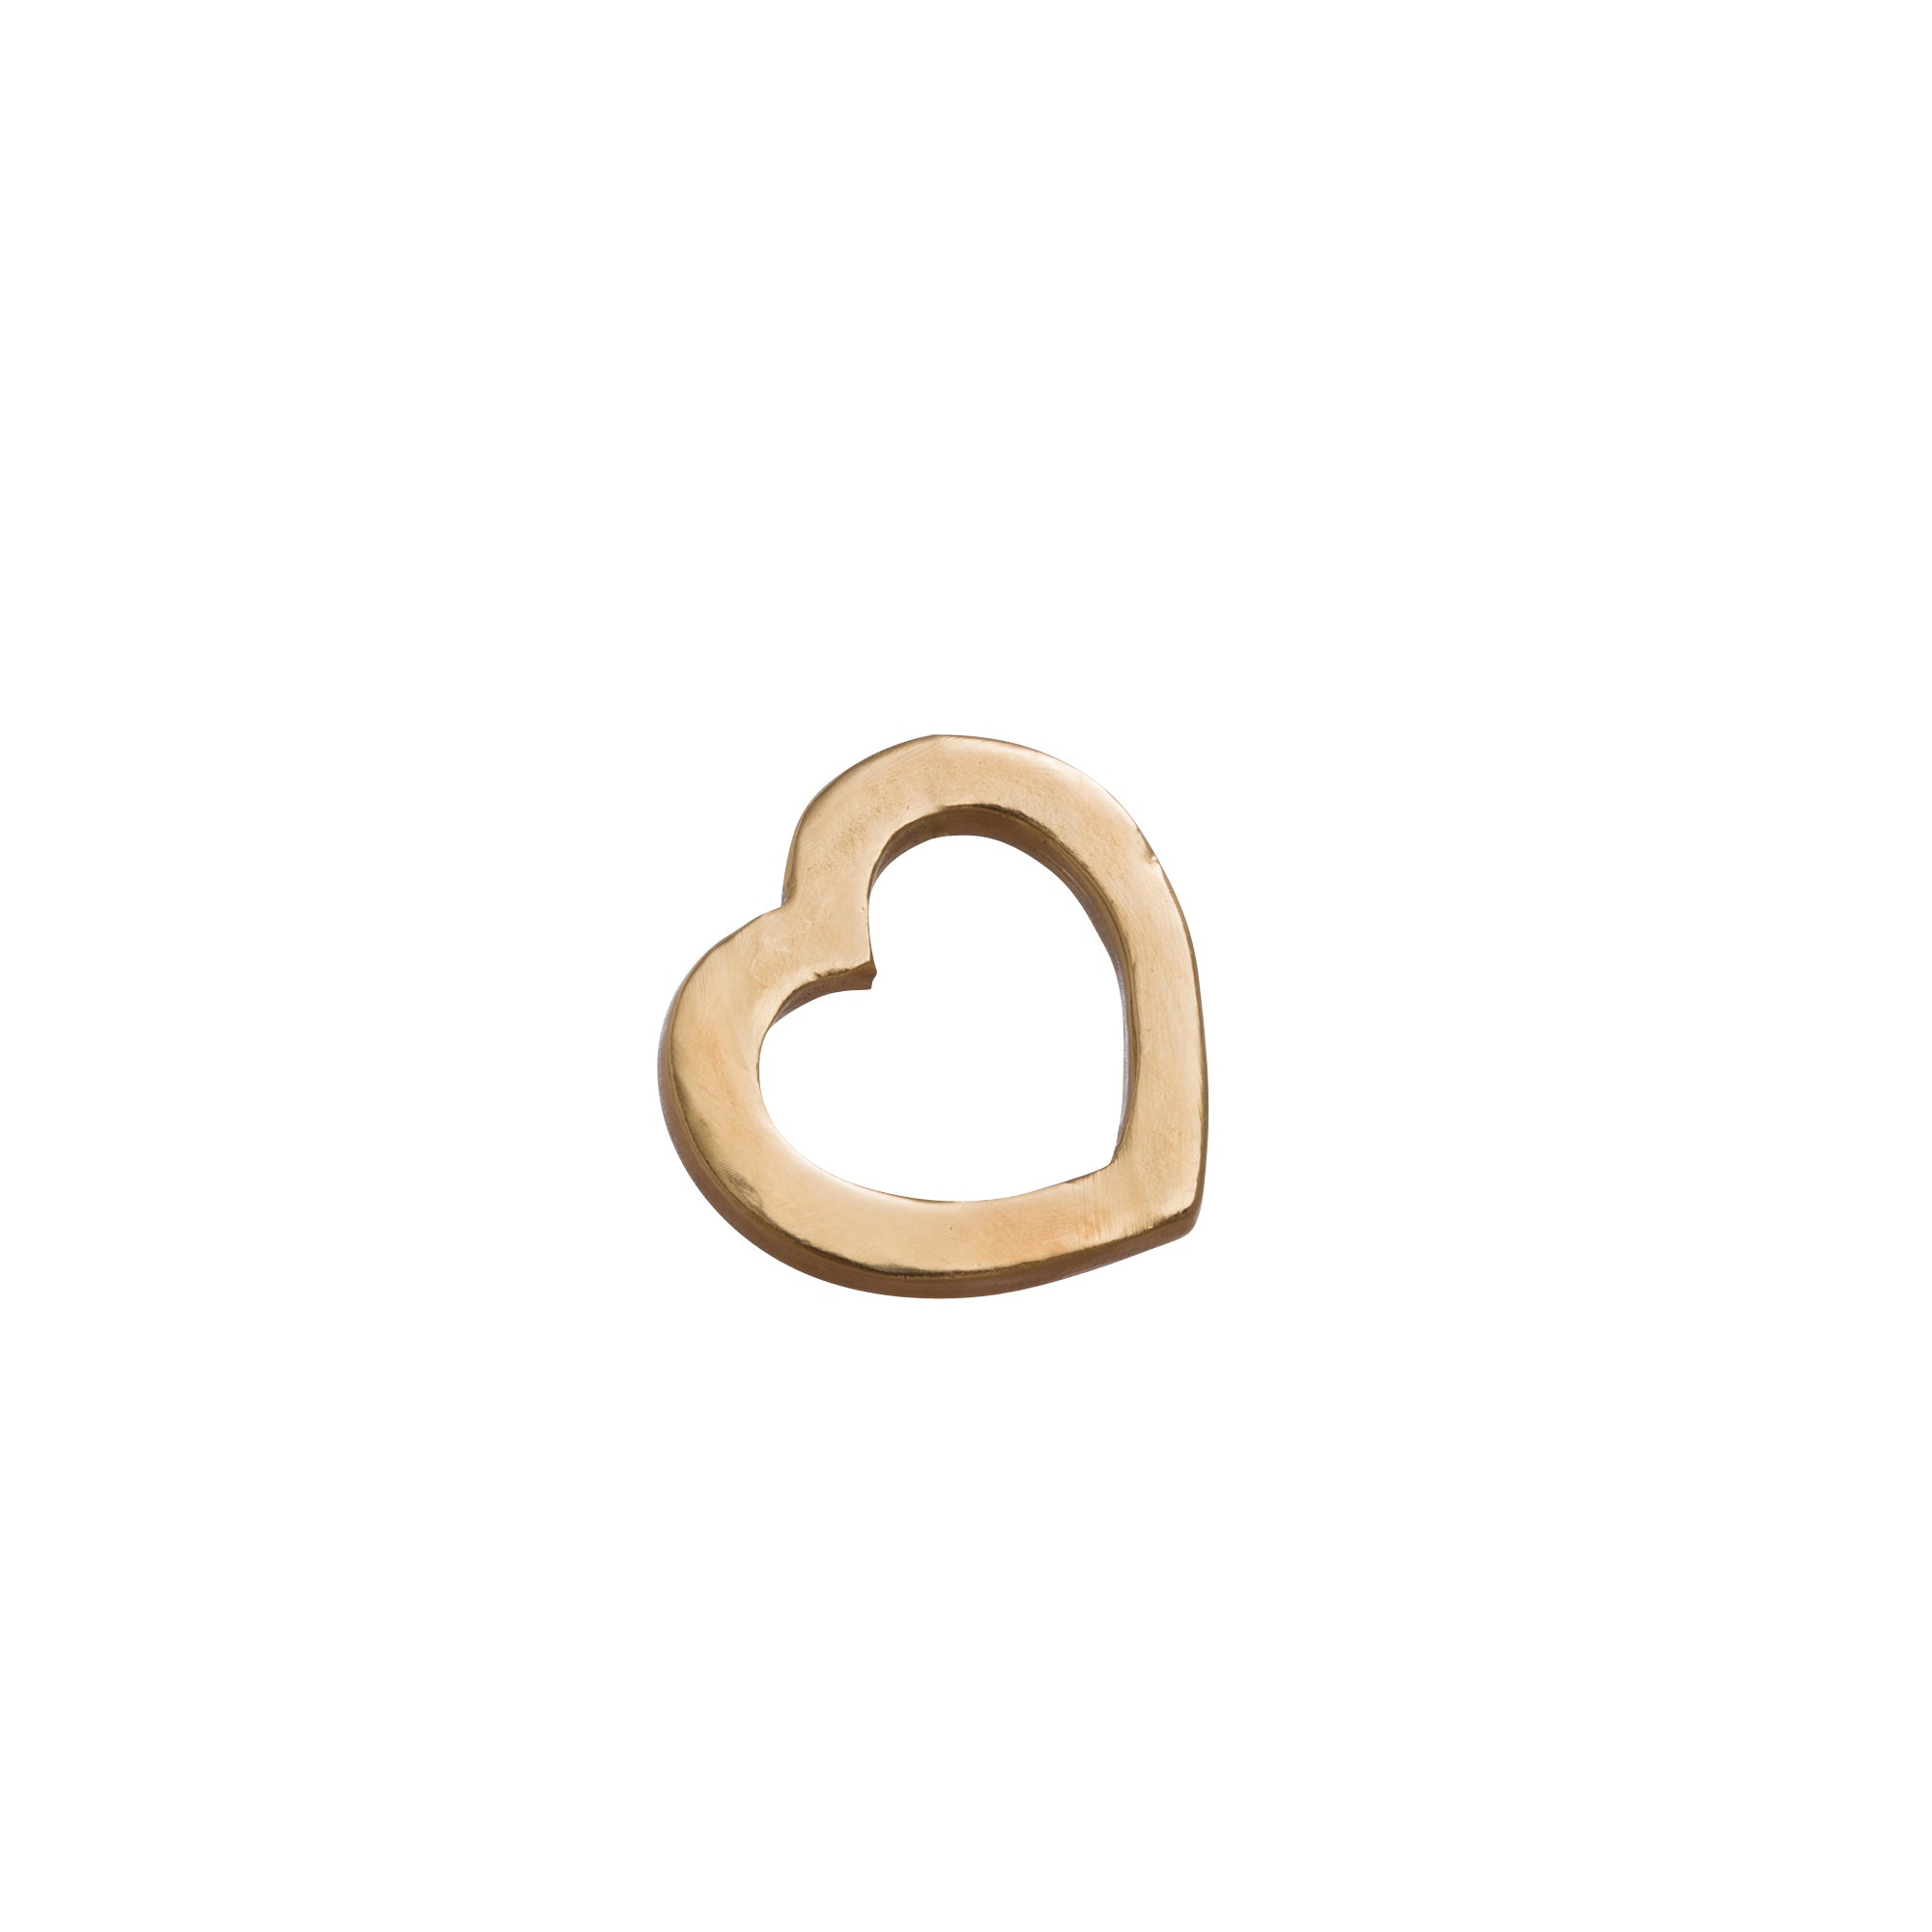 Cutout Heart by James Colarusso for Broken English Jewelry